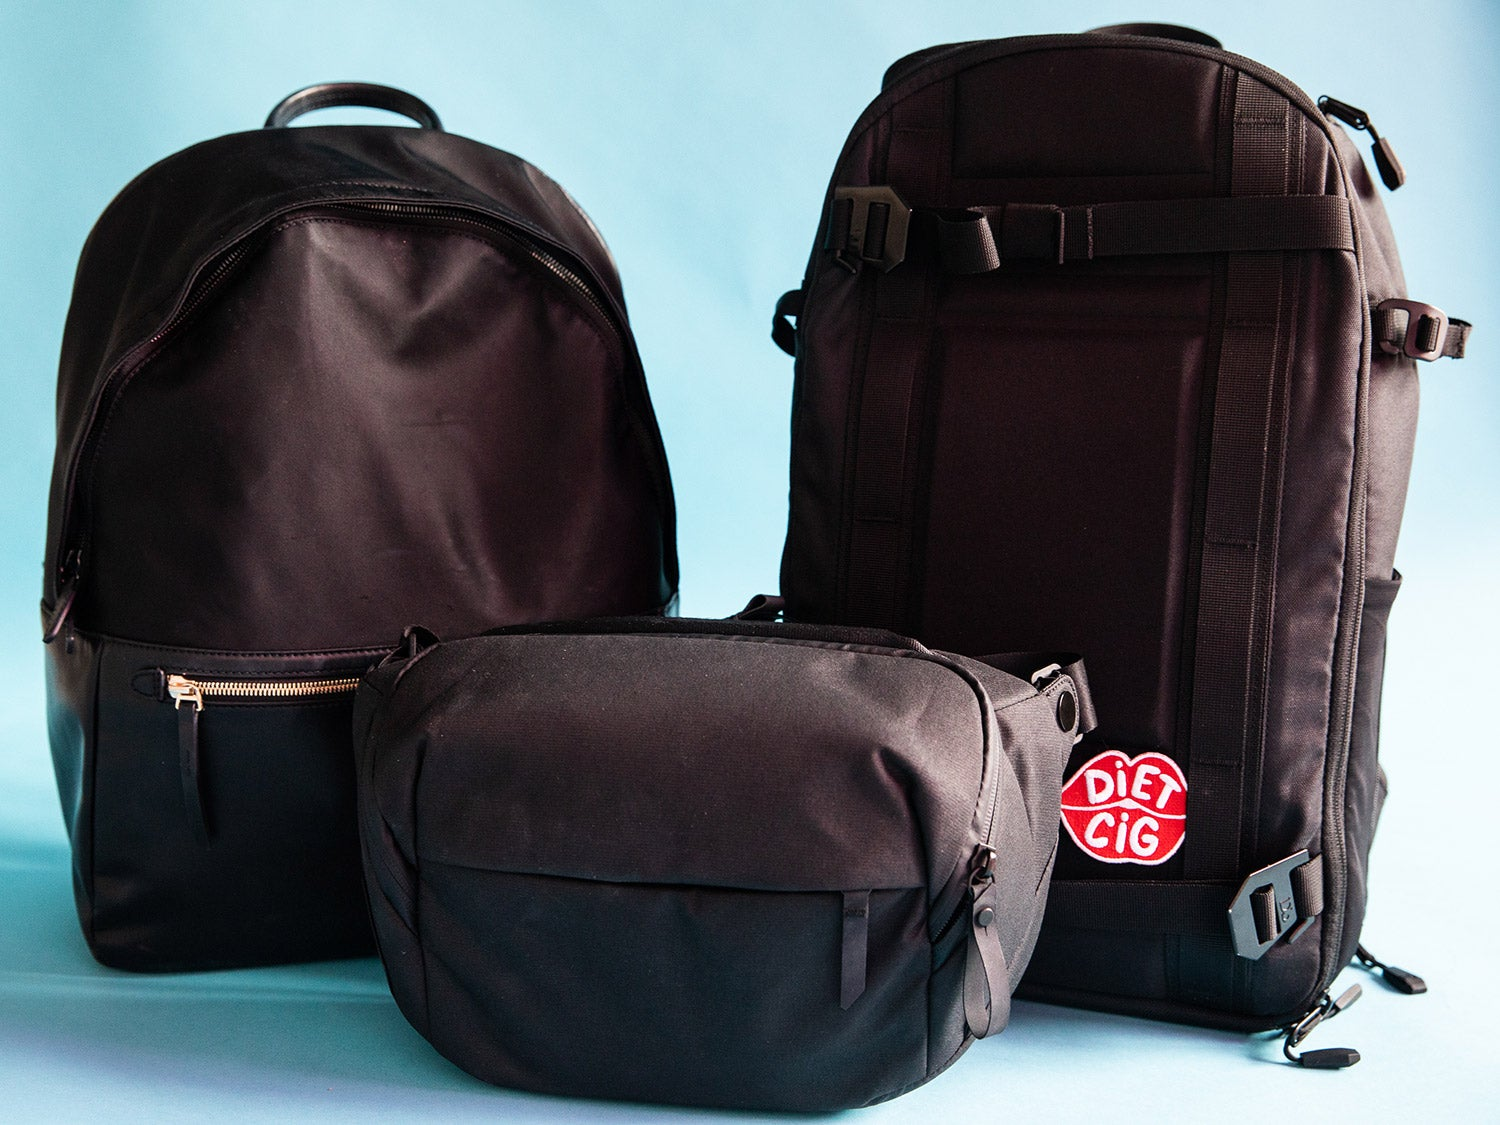 These compact camera bags carry just the right amount of gear